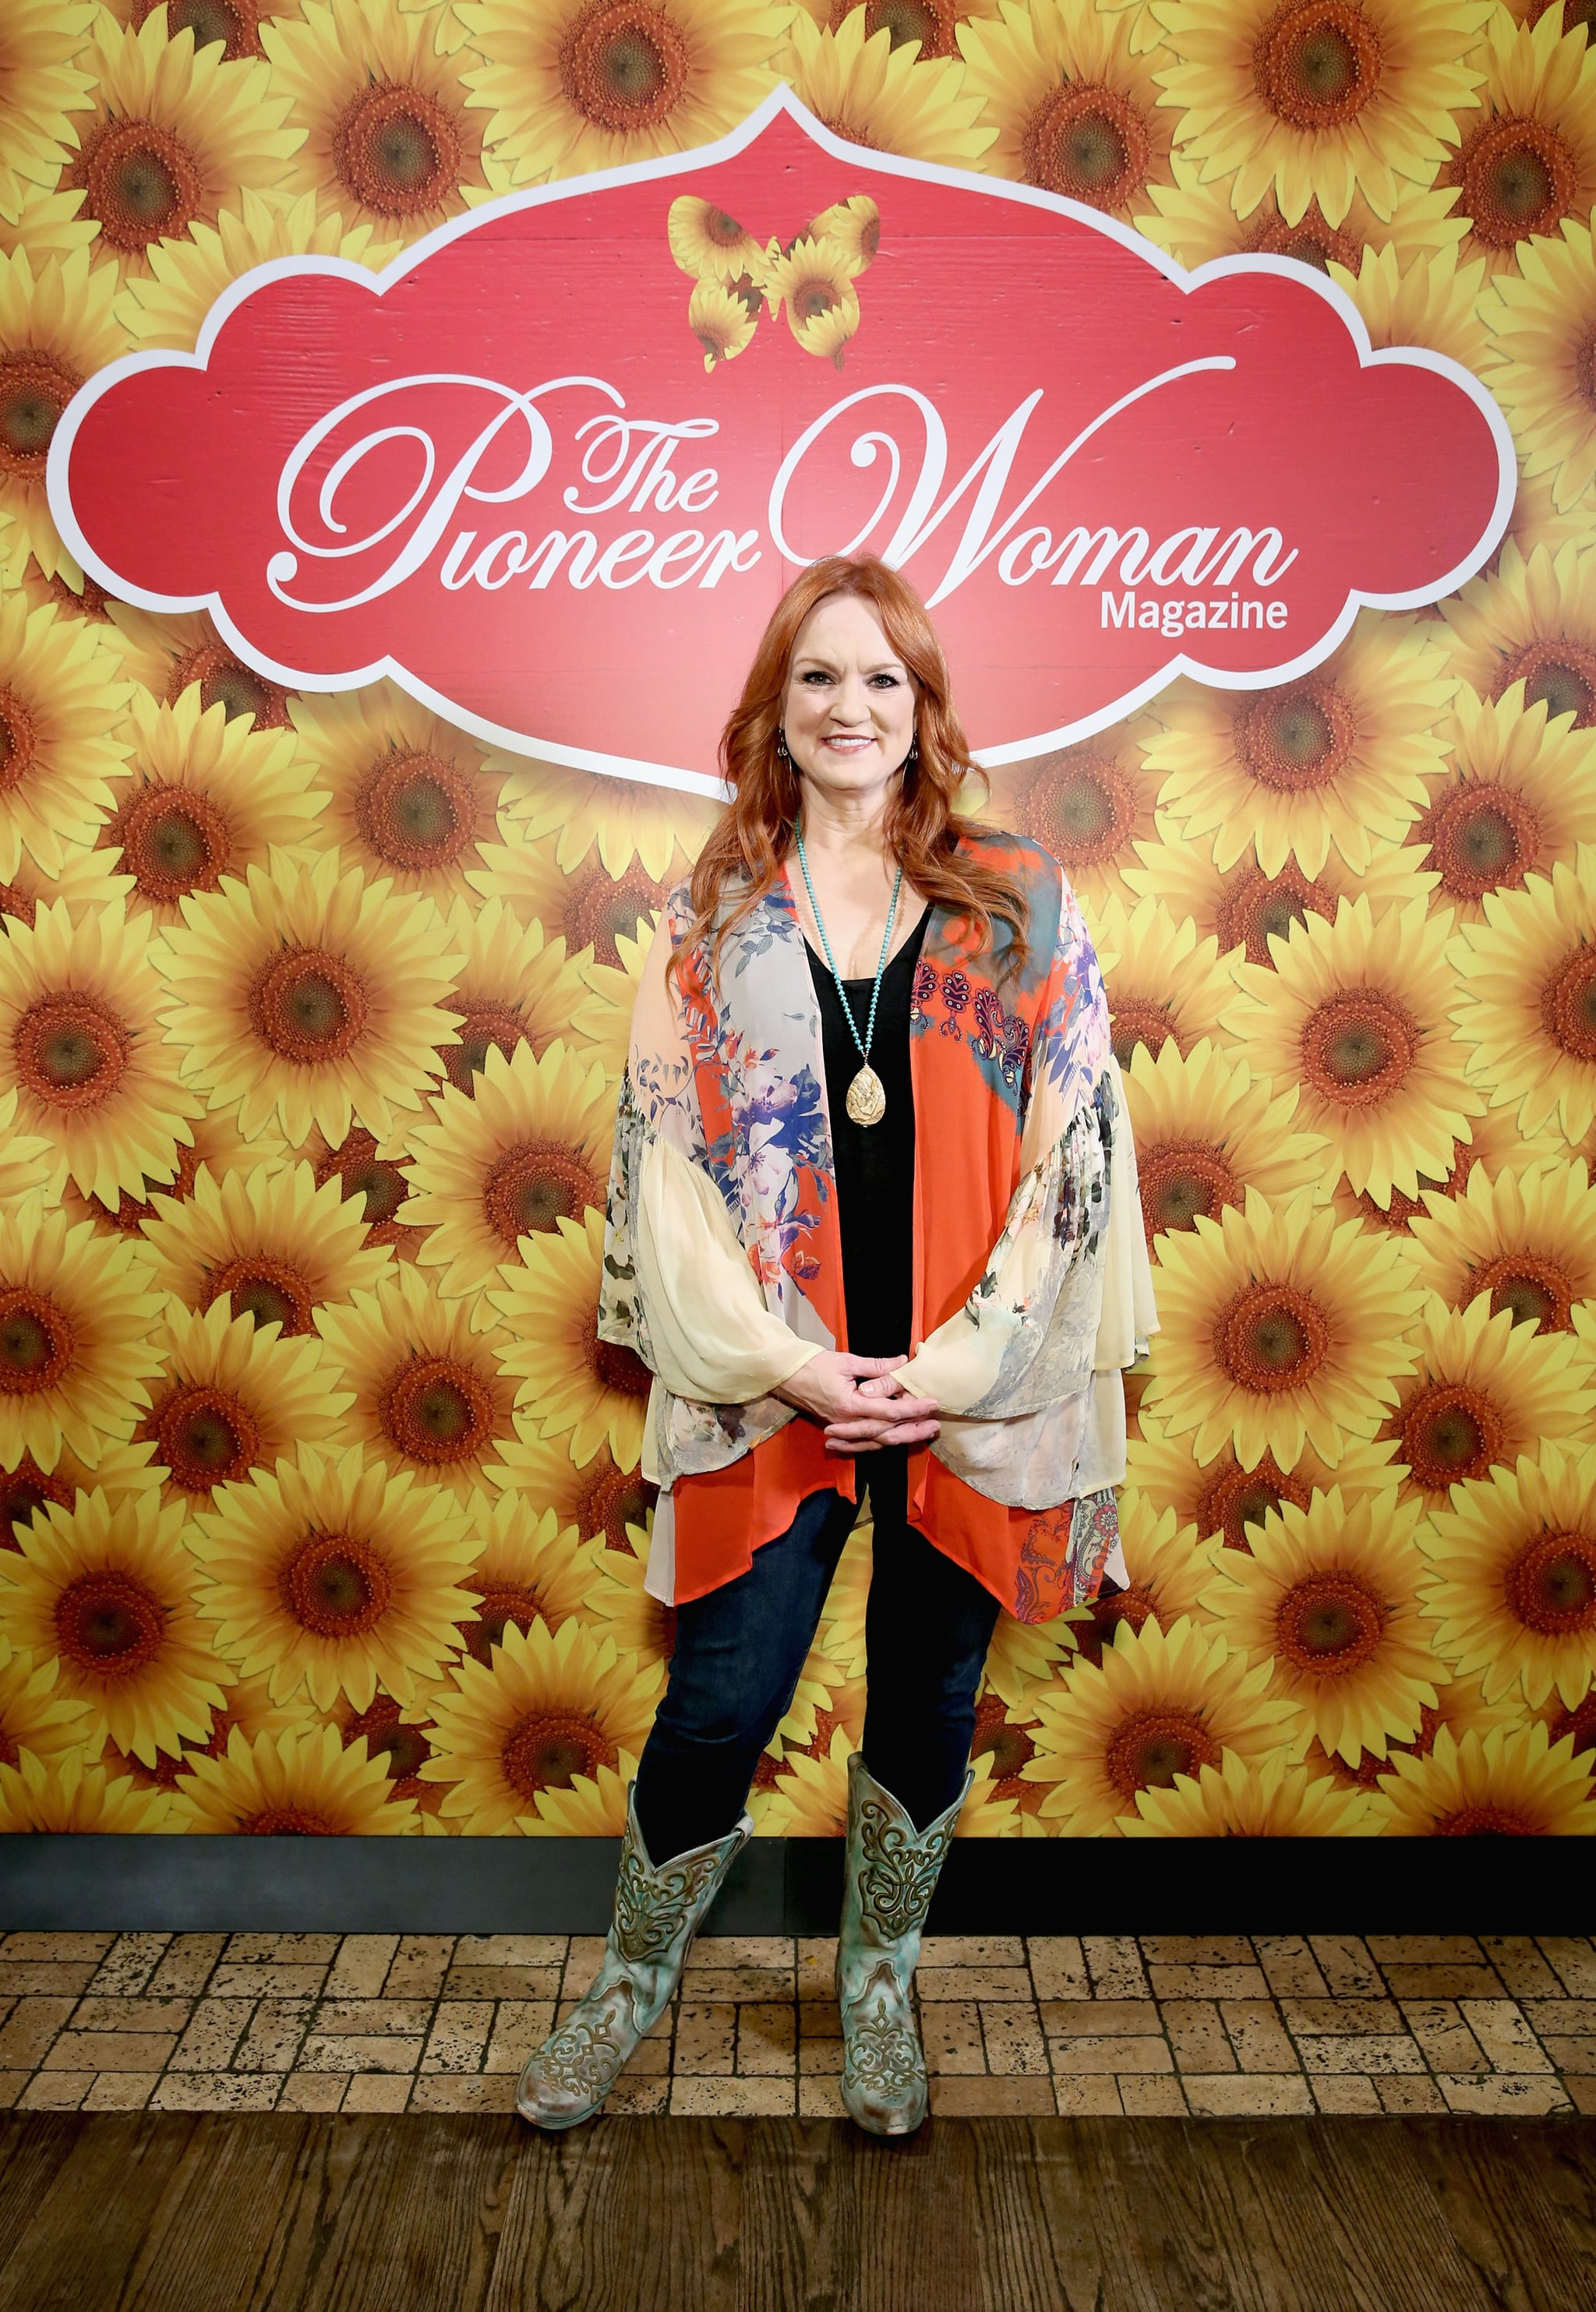 Ree Drummond's Self-Made Cooking Empire Is Worth a Whole Lot of Money